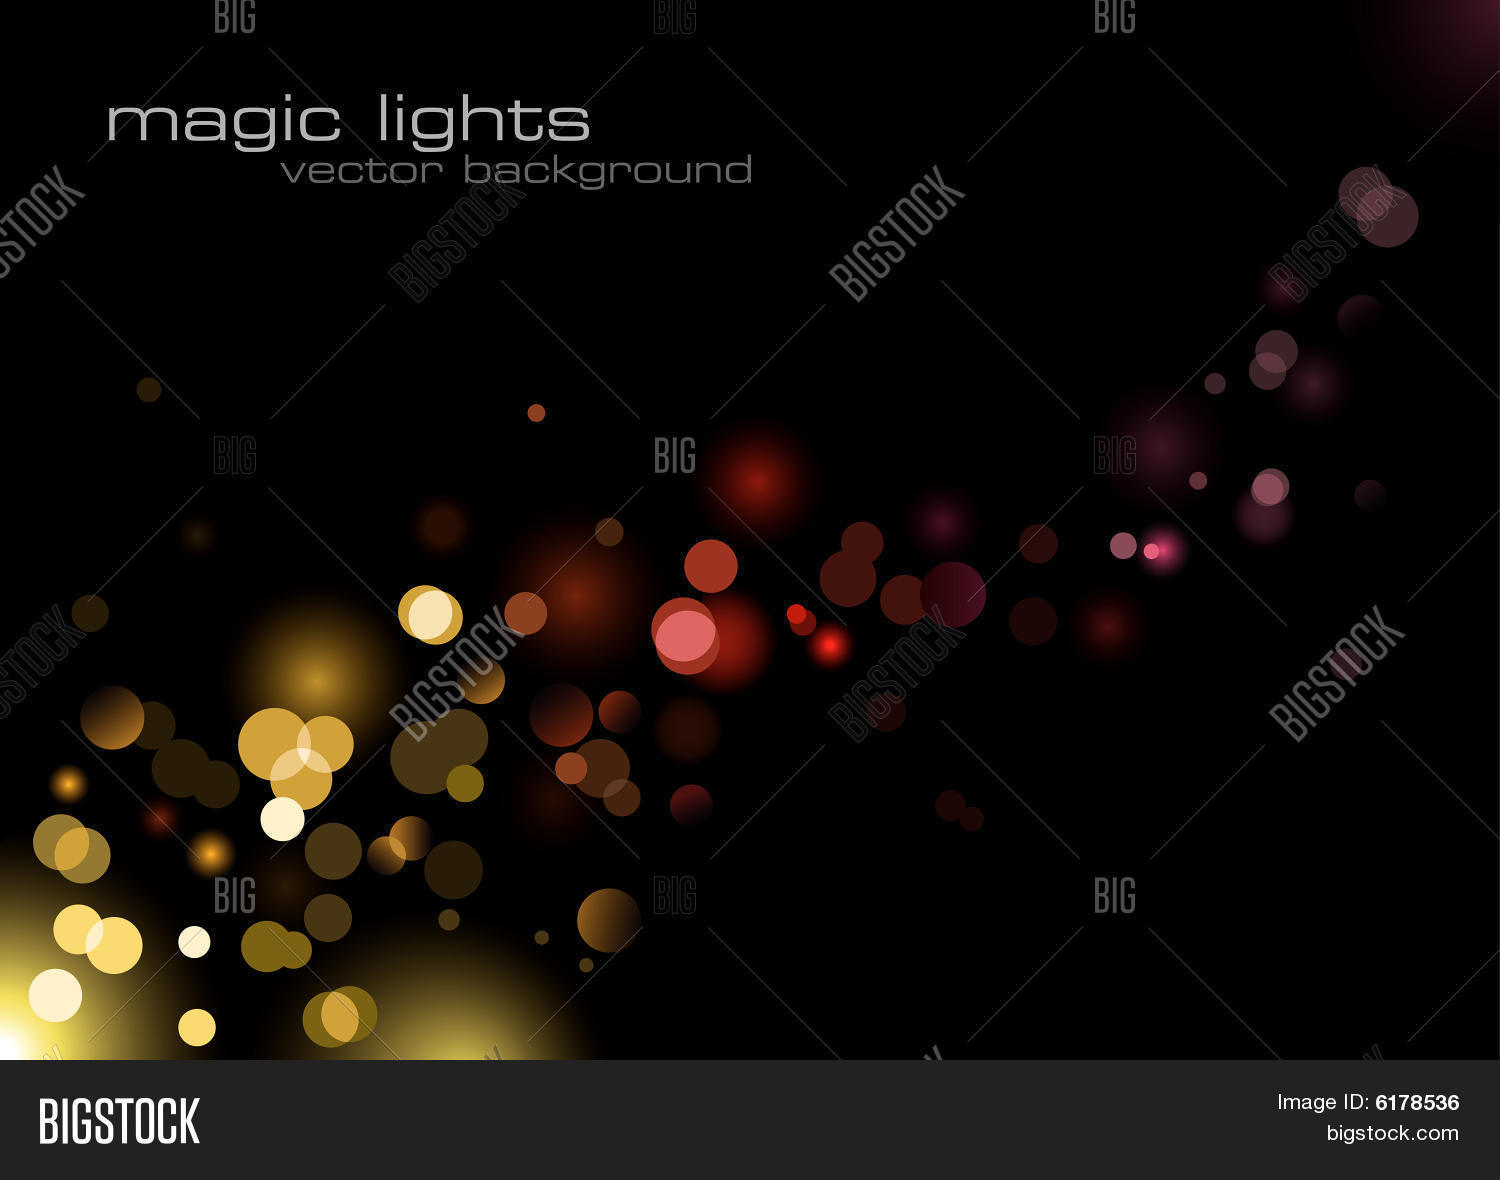 abstract,backdrop,background,black,blur,card,celebration,christmas,clubbing,color,colorful,copyspace,curve,dark,disco,dof,editable,entertainment,festive,flyer,glittering,glow,golden,greeting,greeting-card,holidays,illustration,lens,lens-flare,lensflare,light,lights background,luxury,luxury background,new,night,party,poster,red,reflective,round,shiny,swirl,vector,wave,xmas,year,yellow